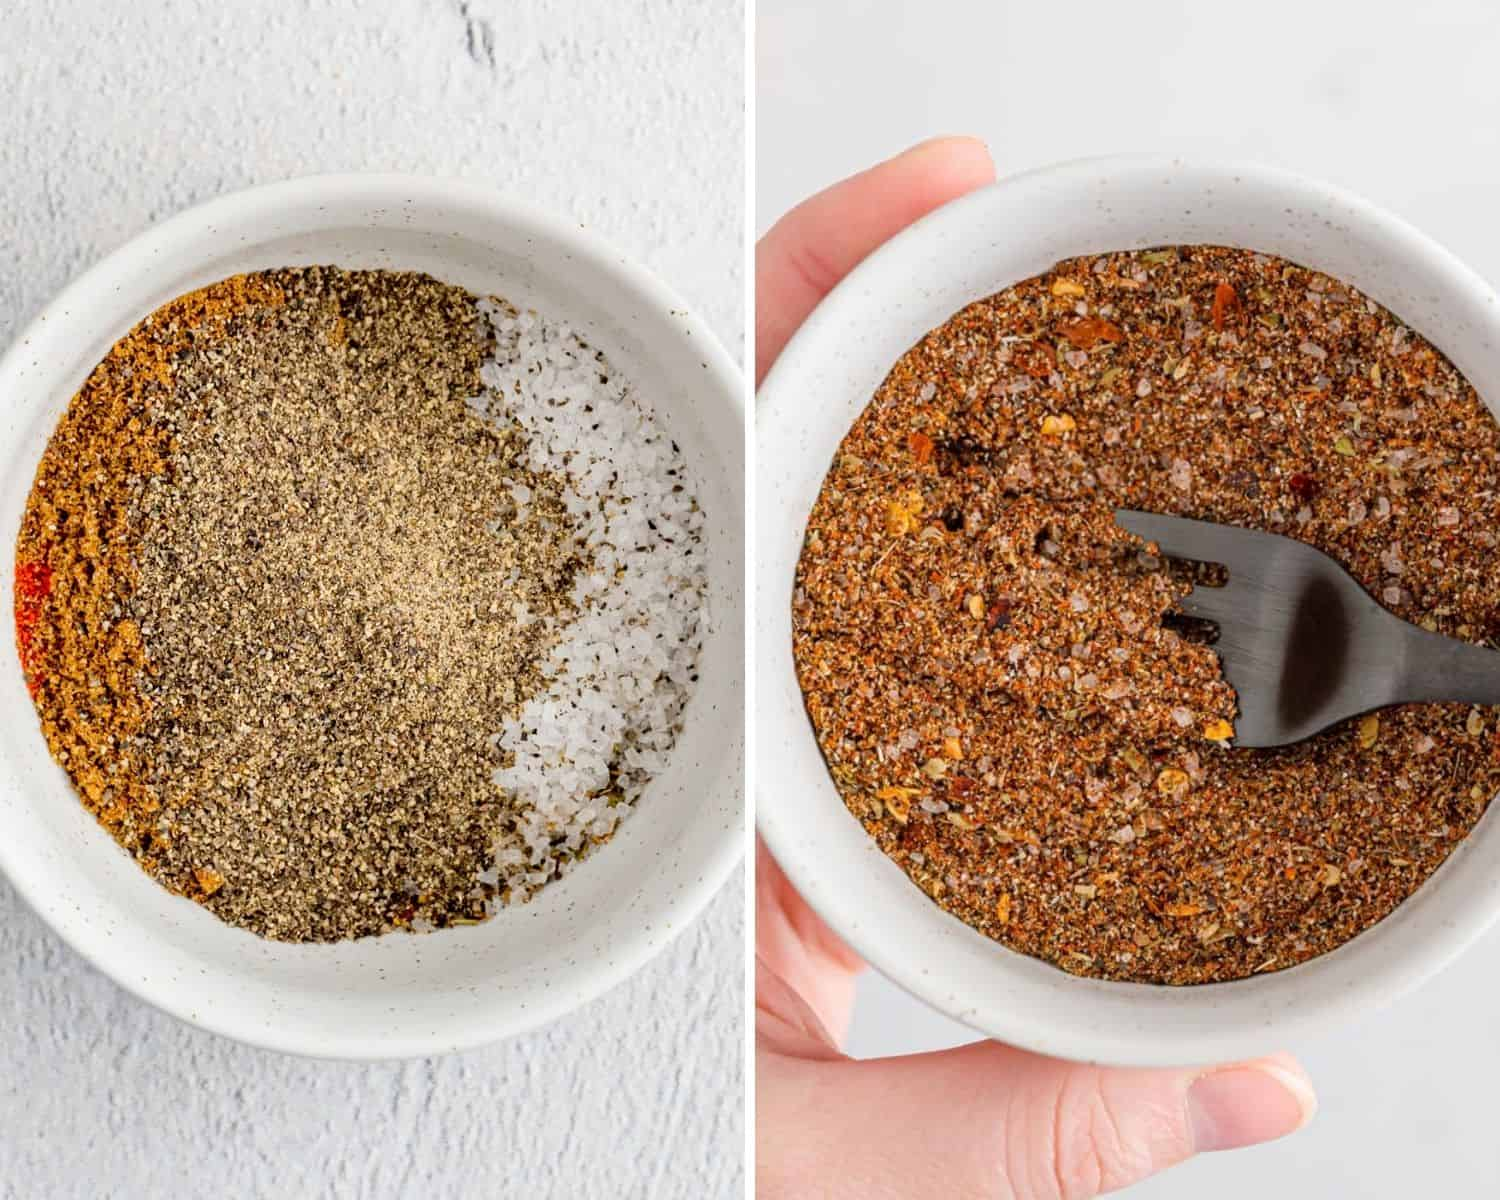 Spice mix before and after being mixed.